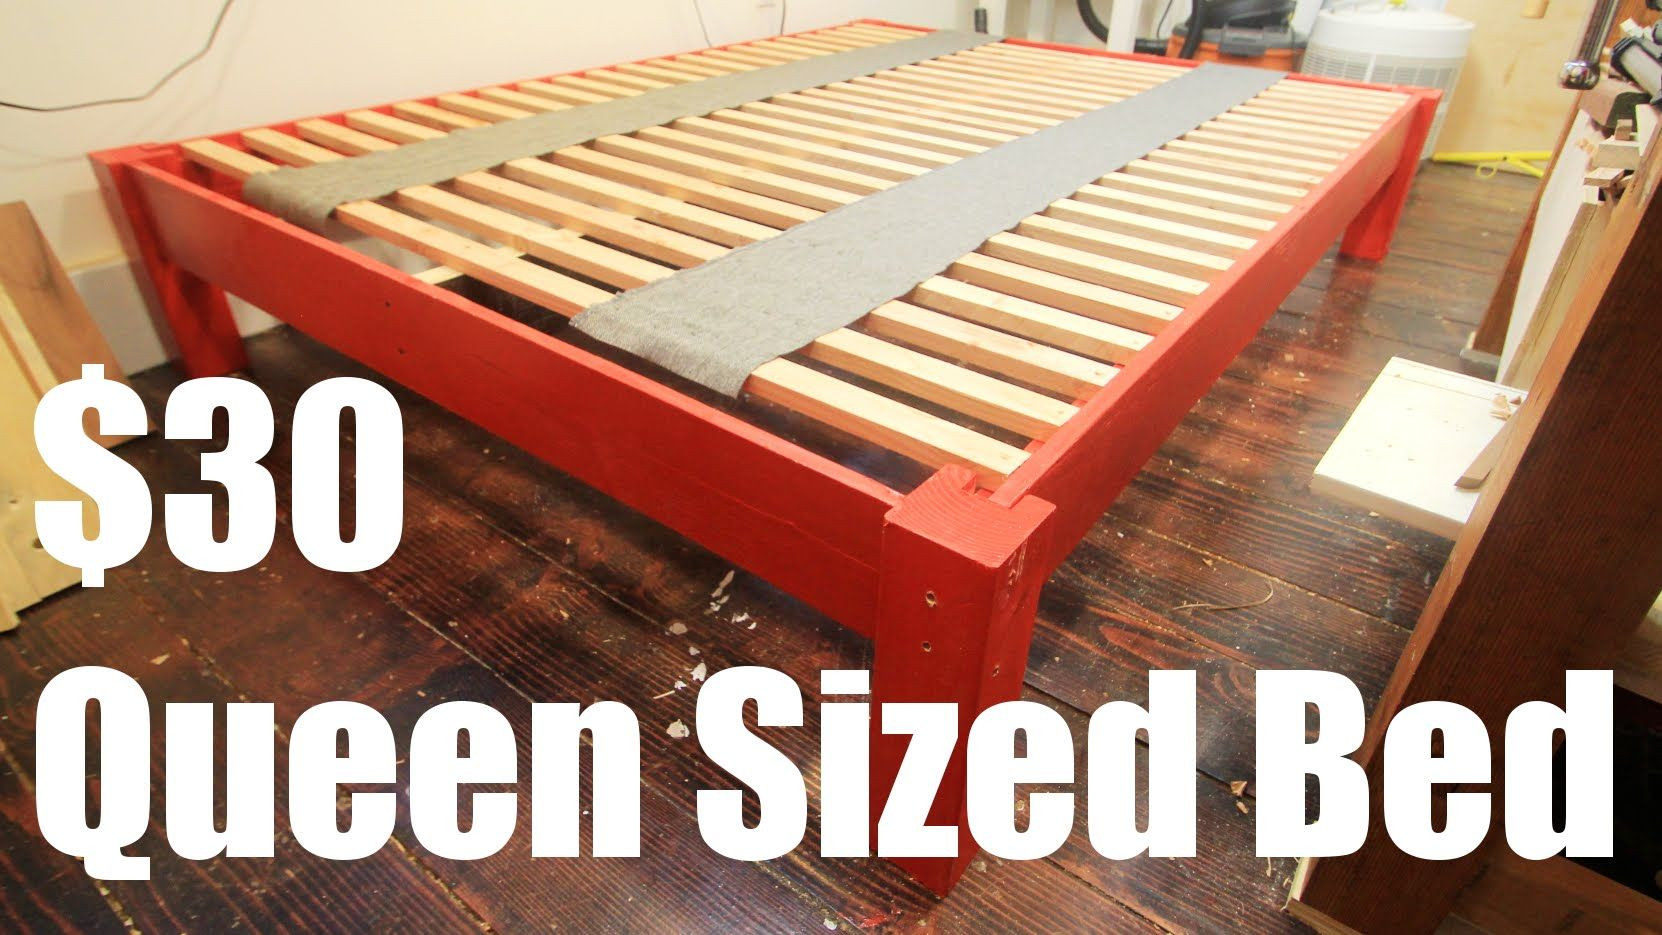 Best ideas about DIY Platform Bed Frame Queen . Save or Pin How To Make a Queen Sized Bed Frame for Under $30 Now.